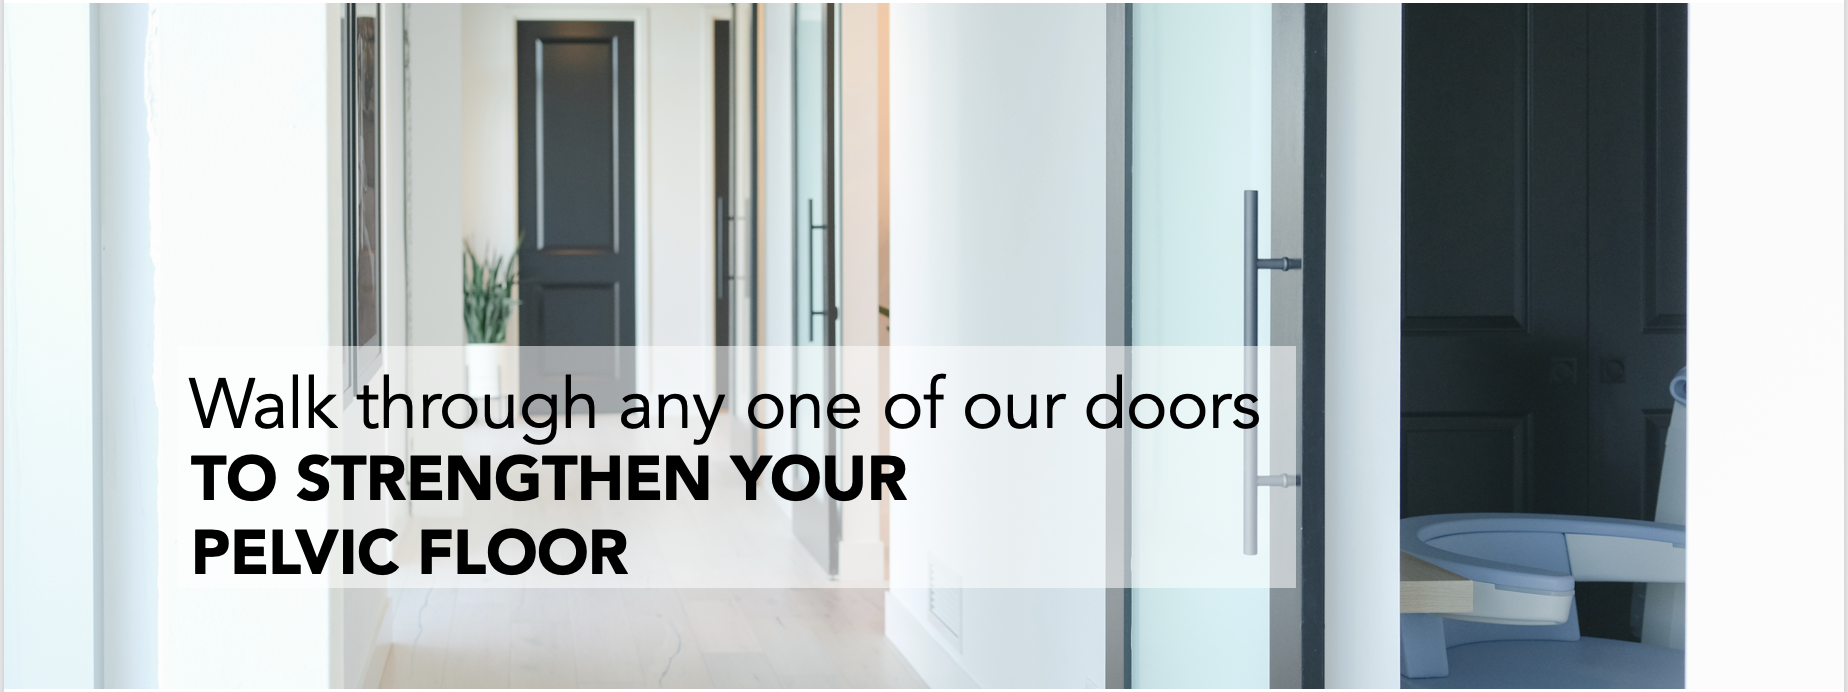 Walk through any one of our doors to strengthen your pelvic floor